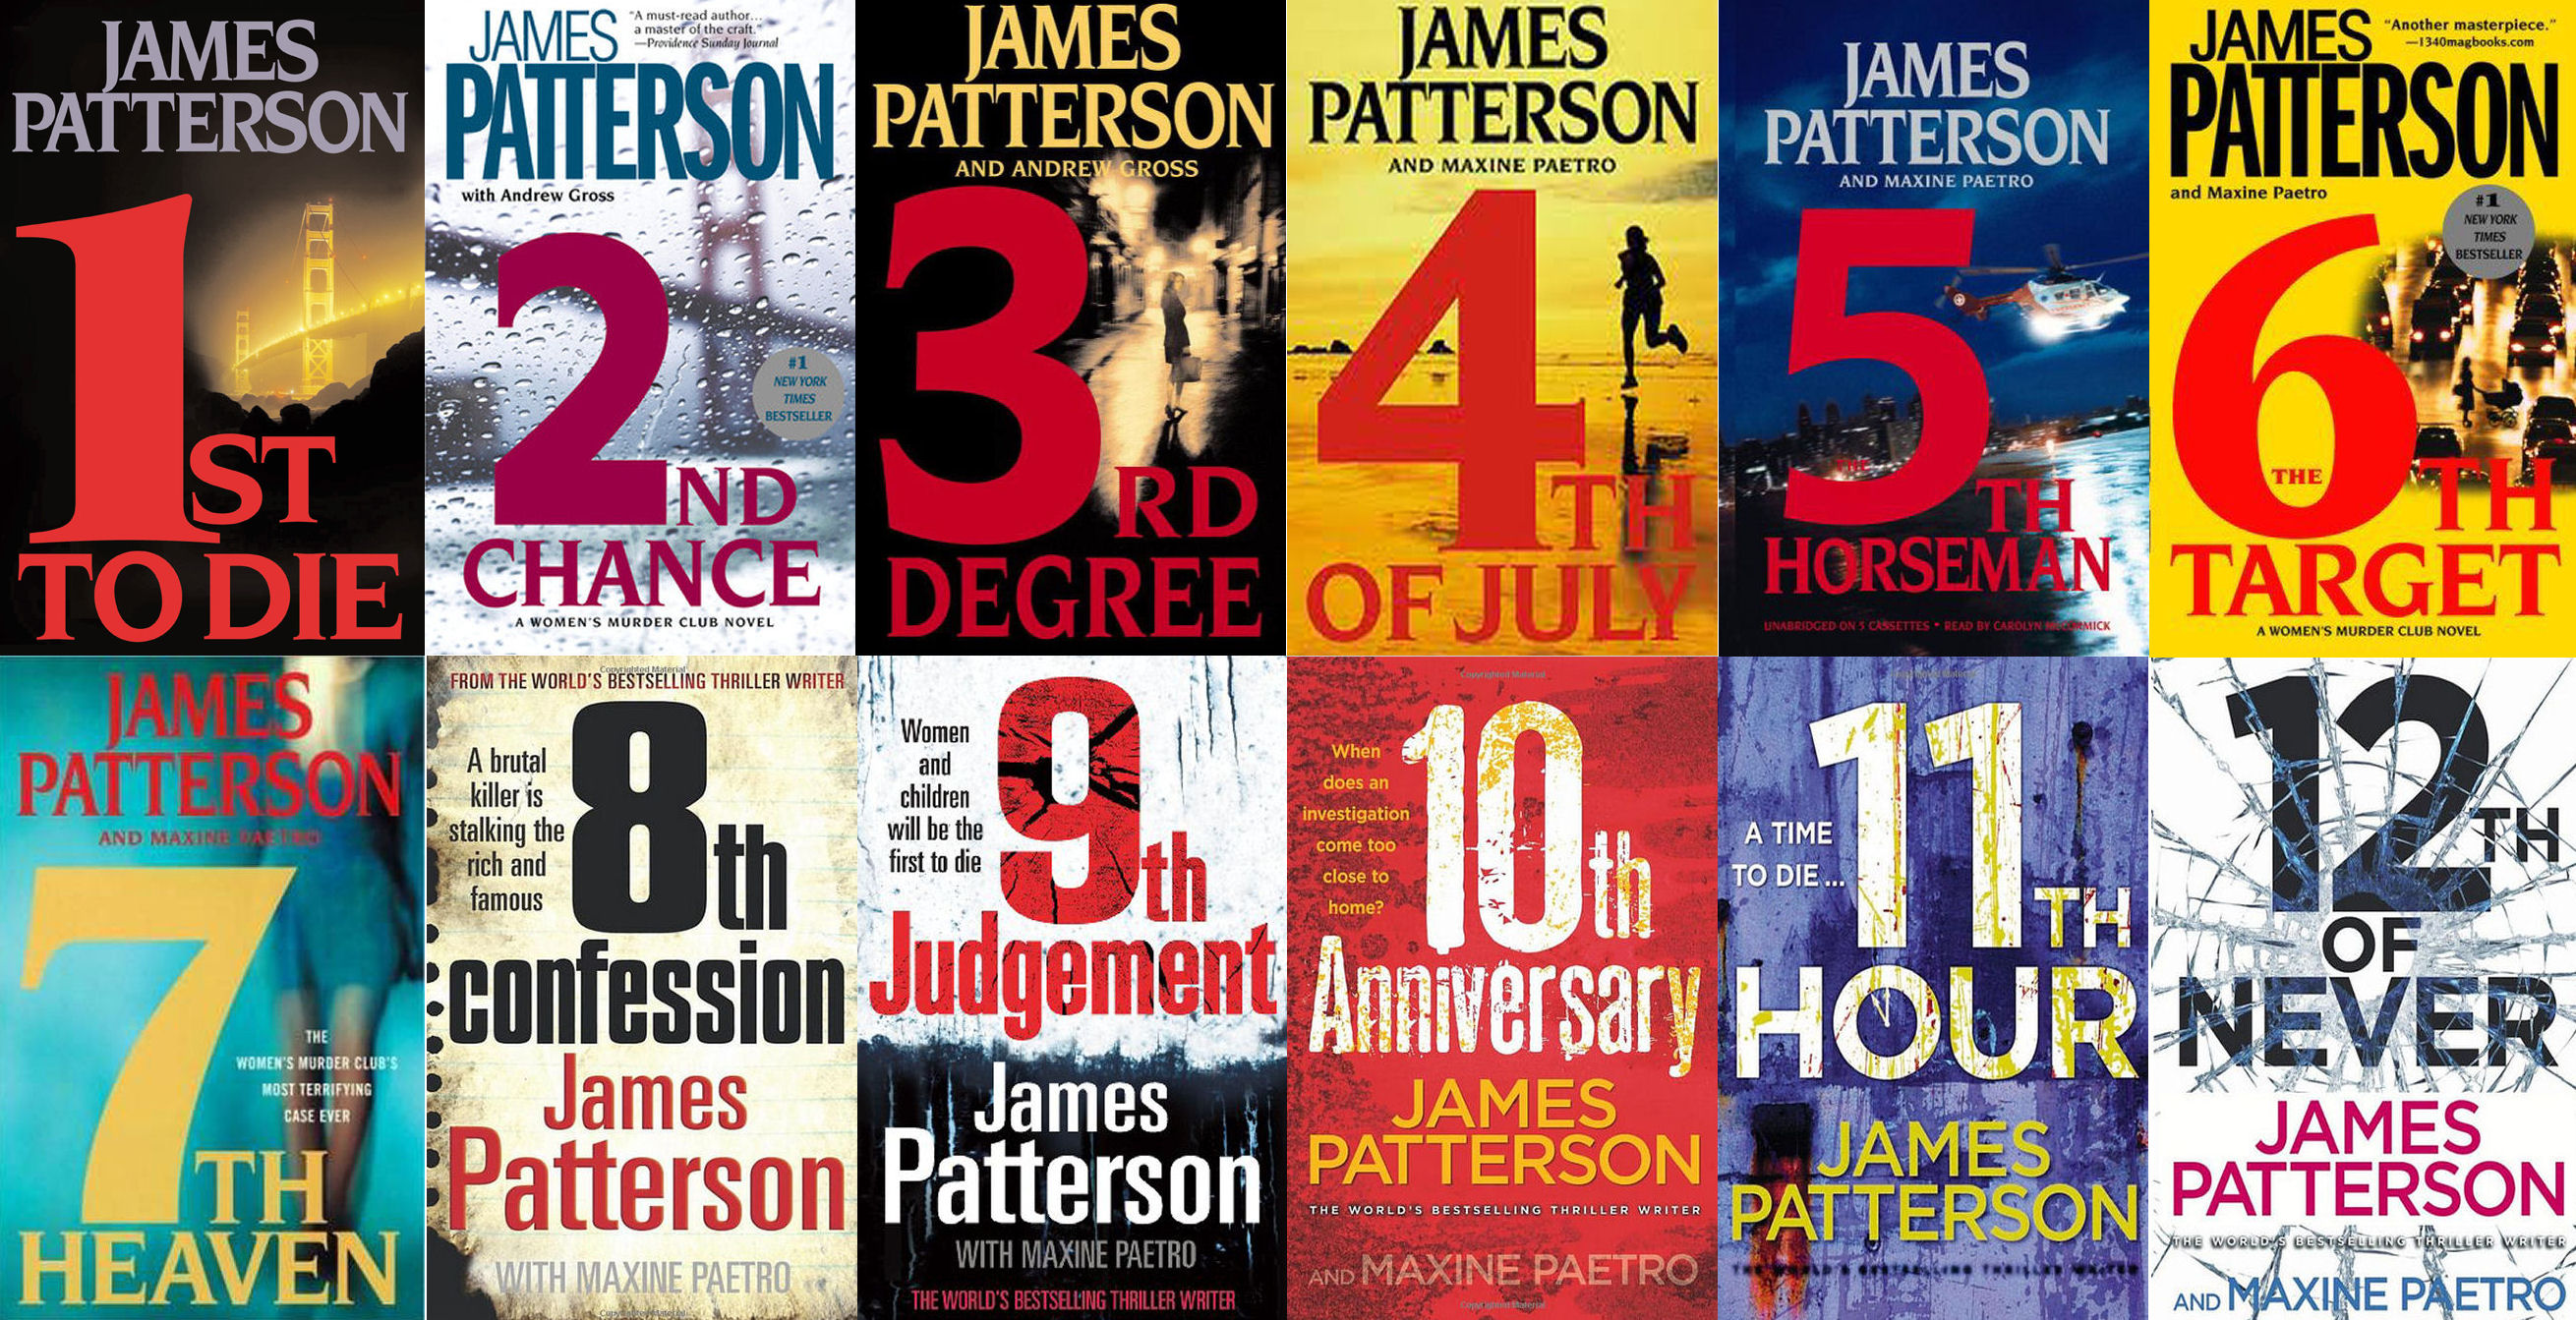 14 Lessons from James Patterson's Masterclass